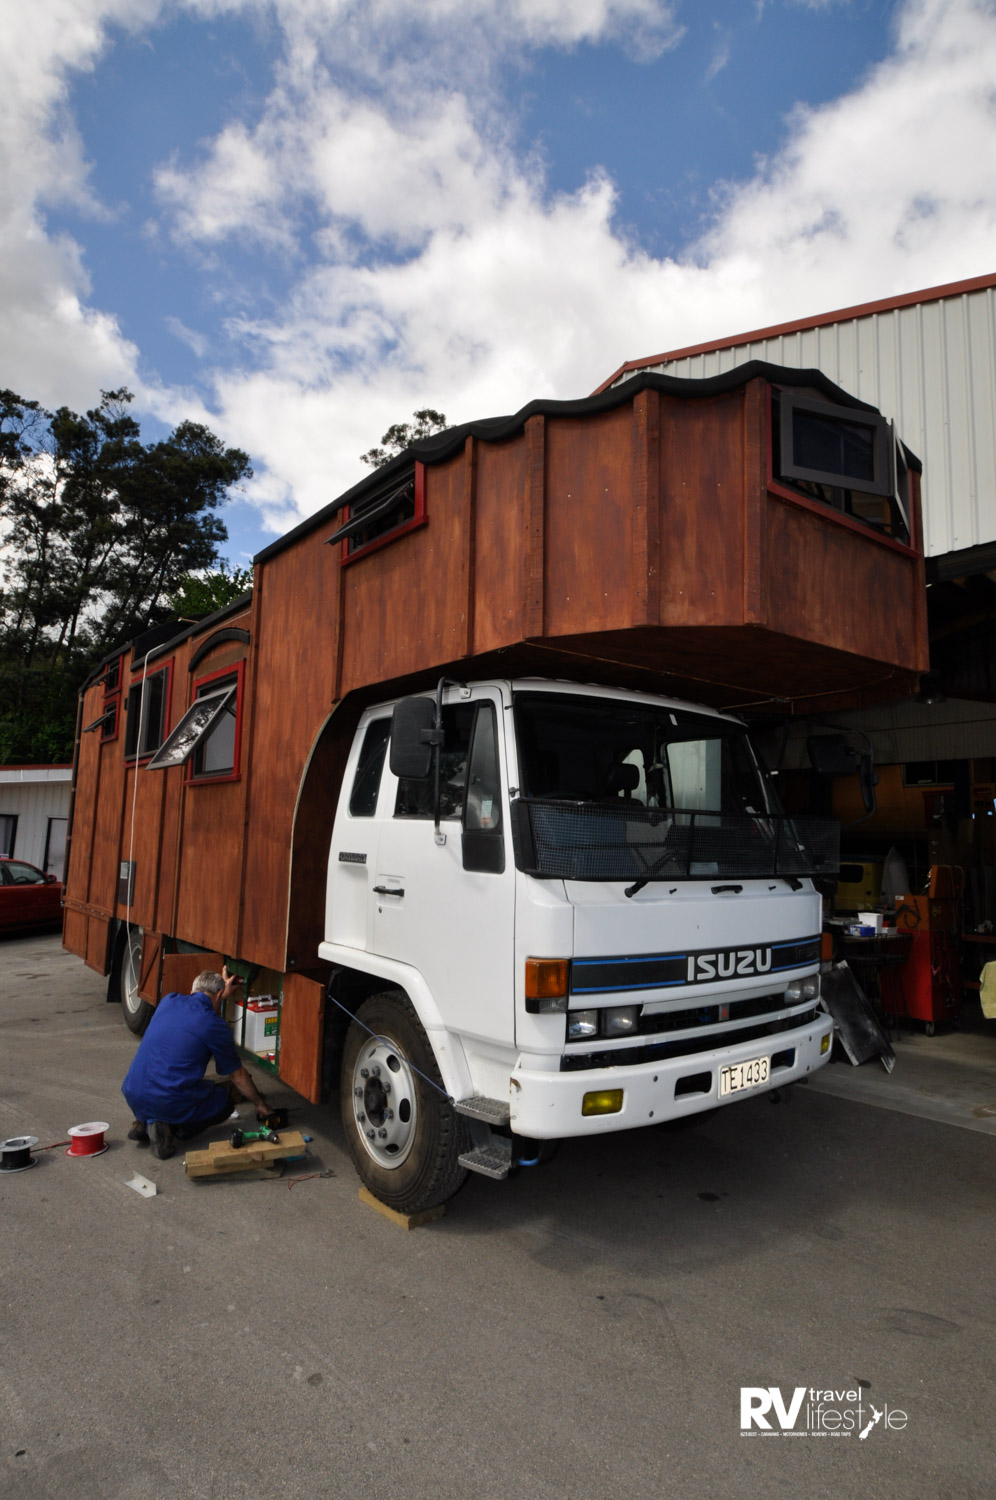 A truck based tiny home is a common sight on our roads.